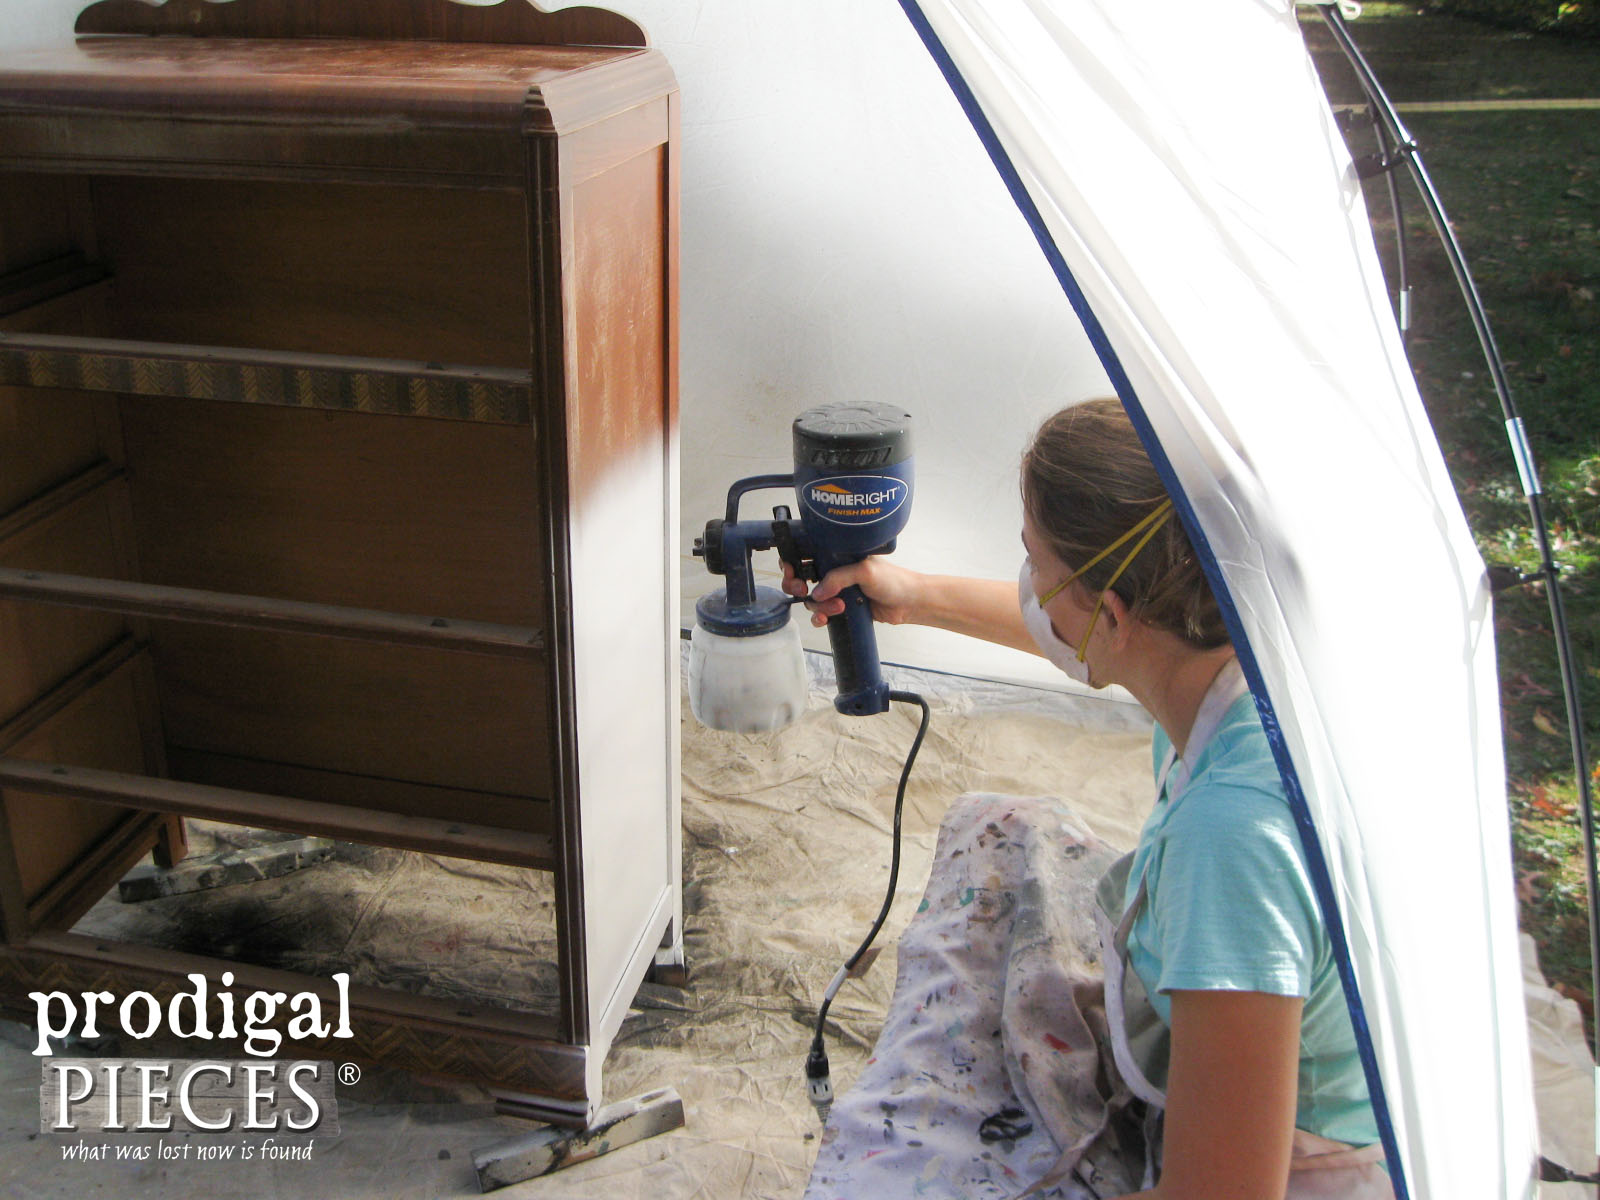 Using the HomeRight Finish Max and Spray Shelter to Paint Furniture | Prodigal Pieces | www.prodigalpieces.com